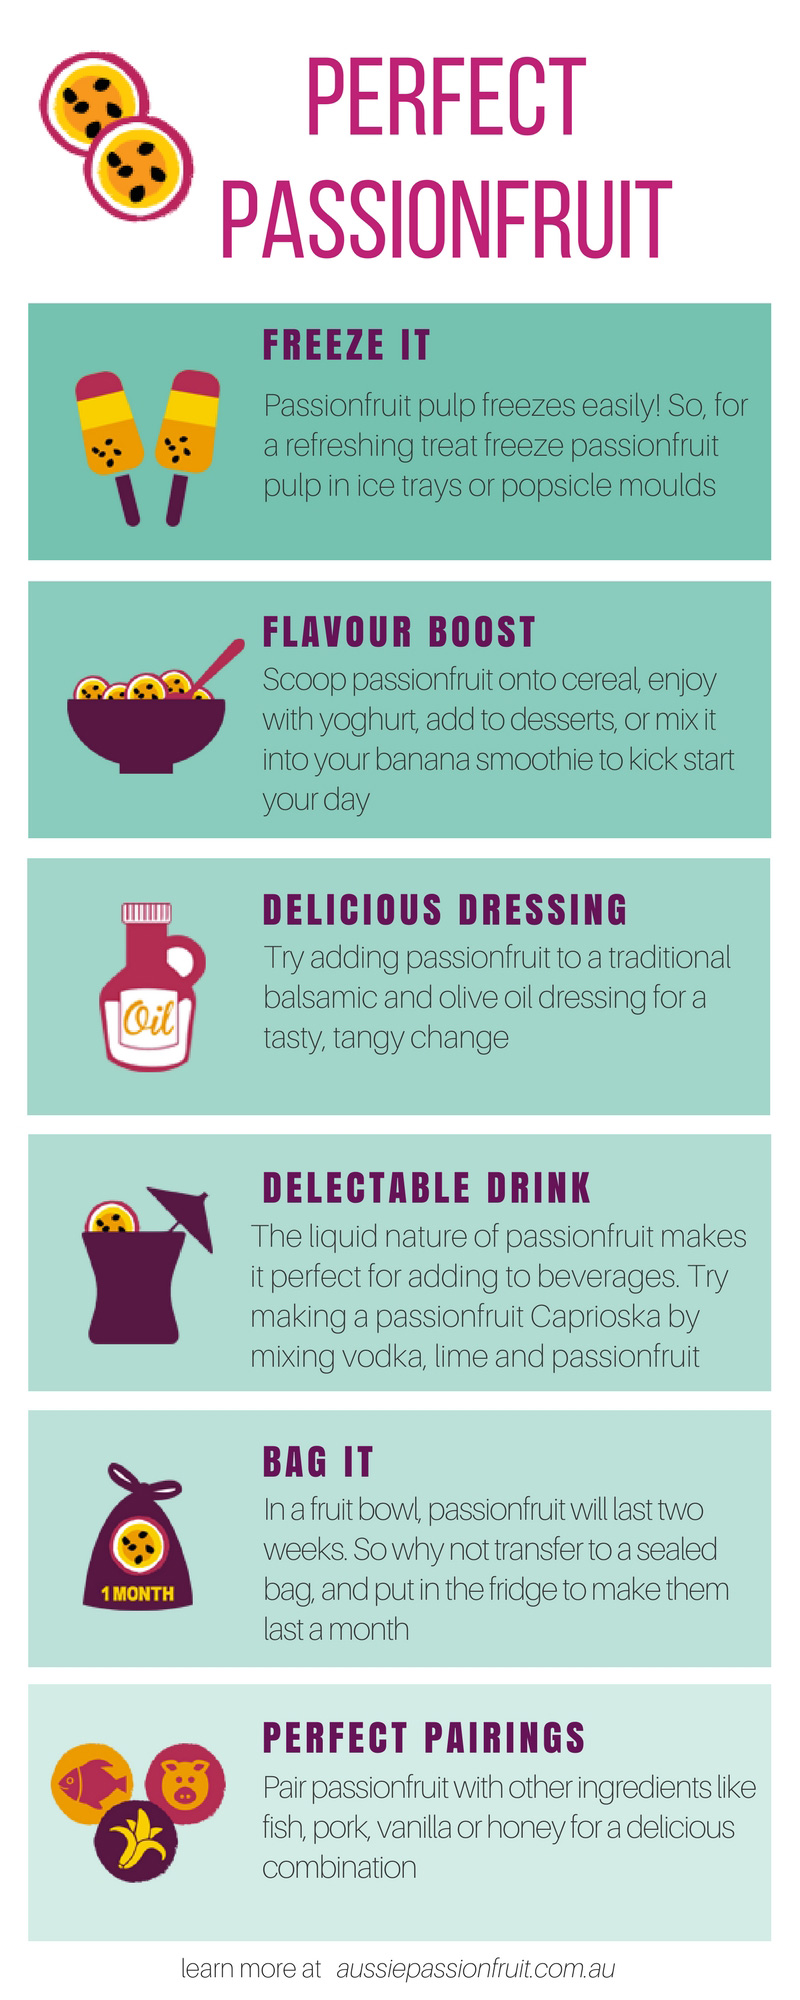 tips and tricks for preparing, freezing and storing passionfruit infographic